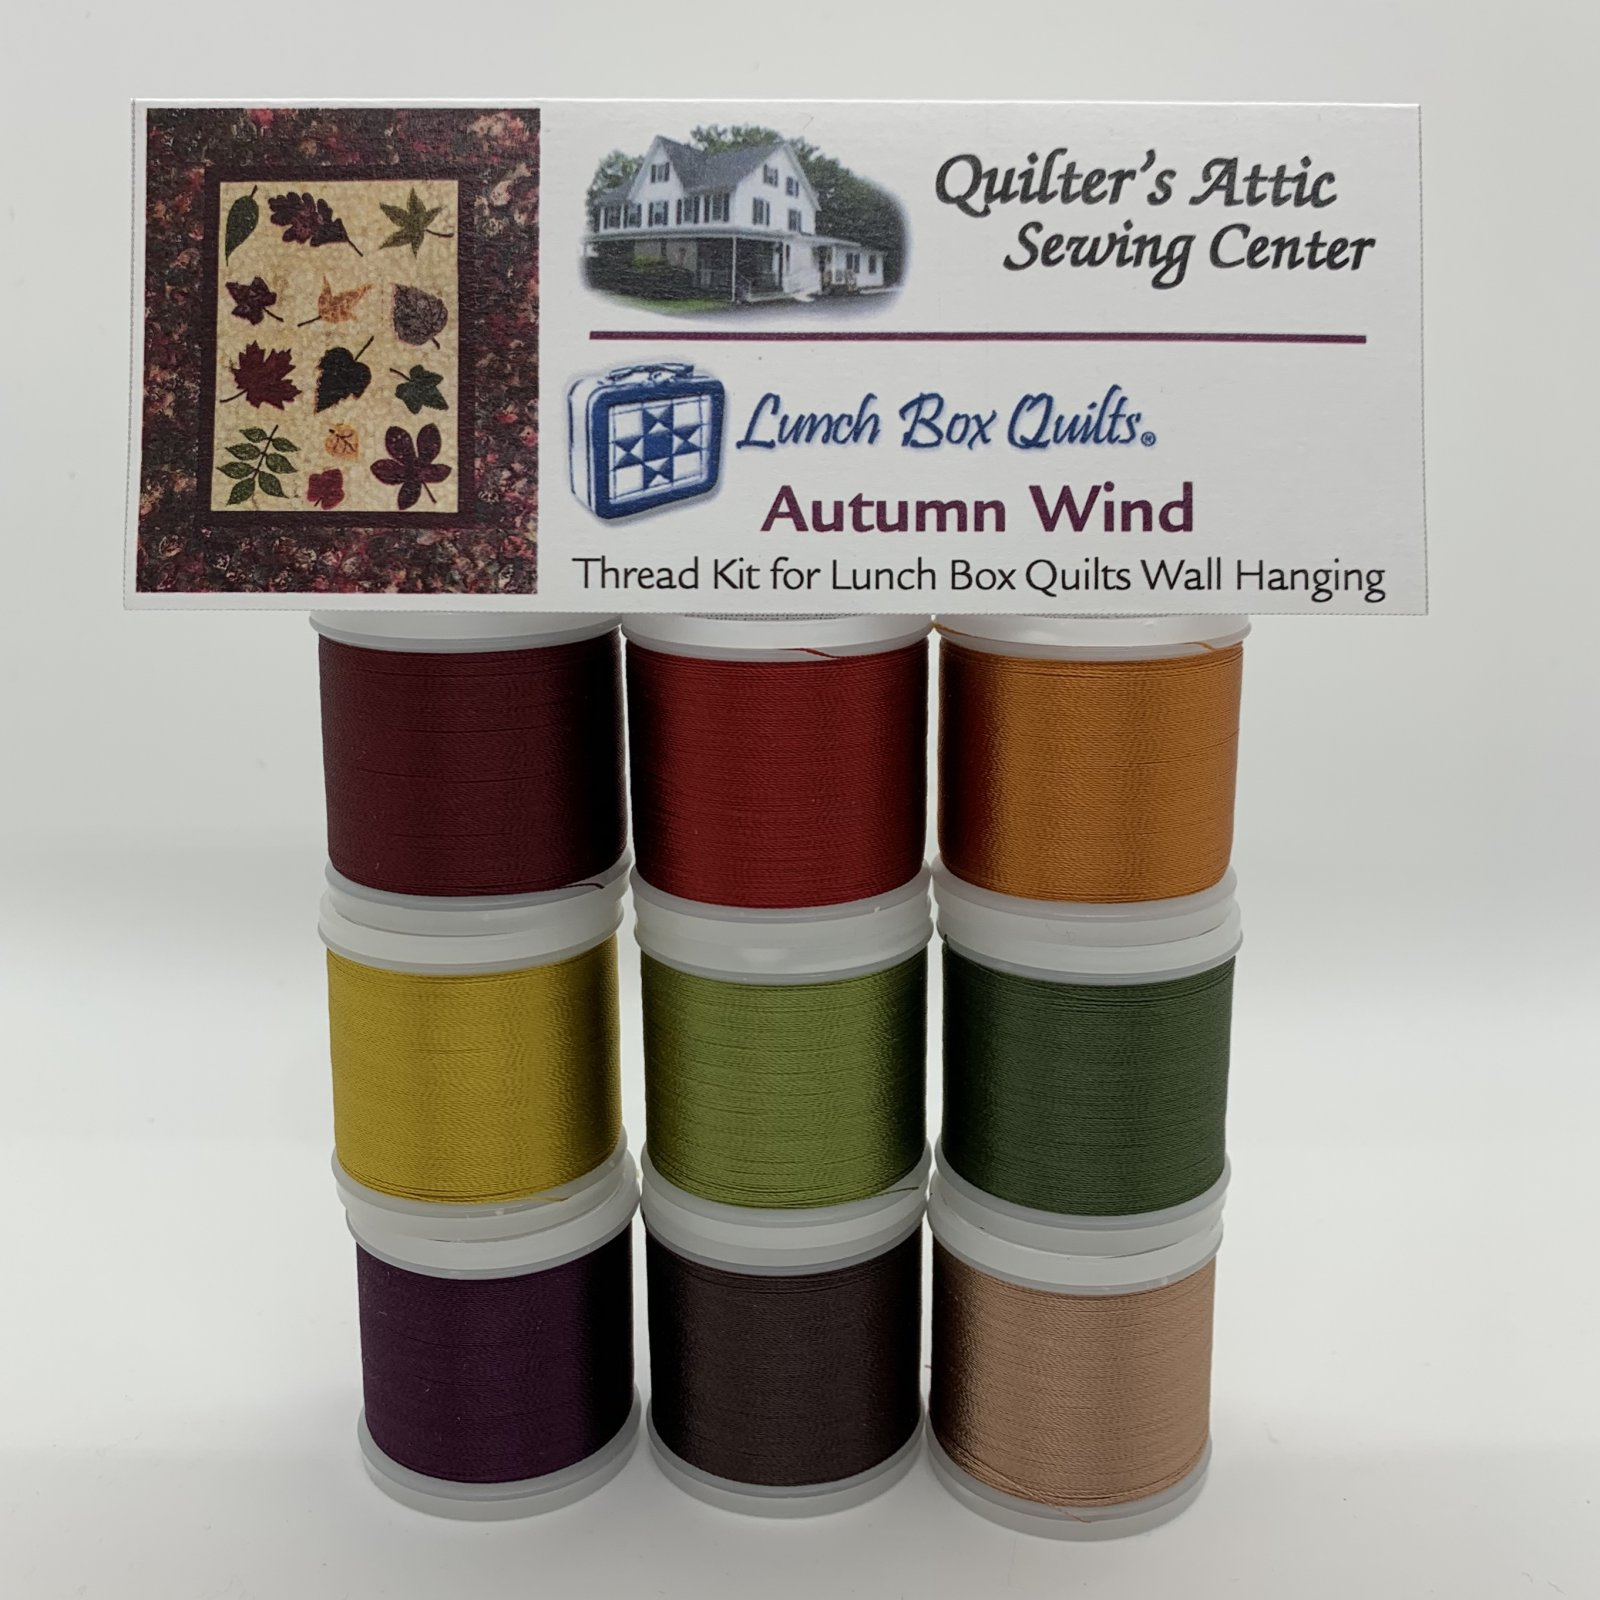 Autumn Wind Rayon Thread Kit